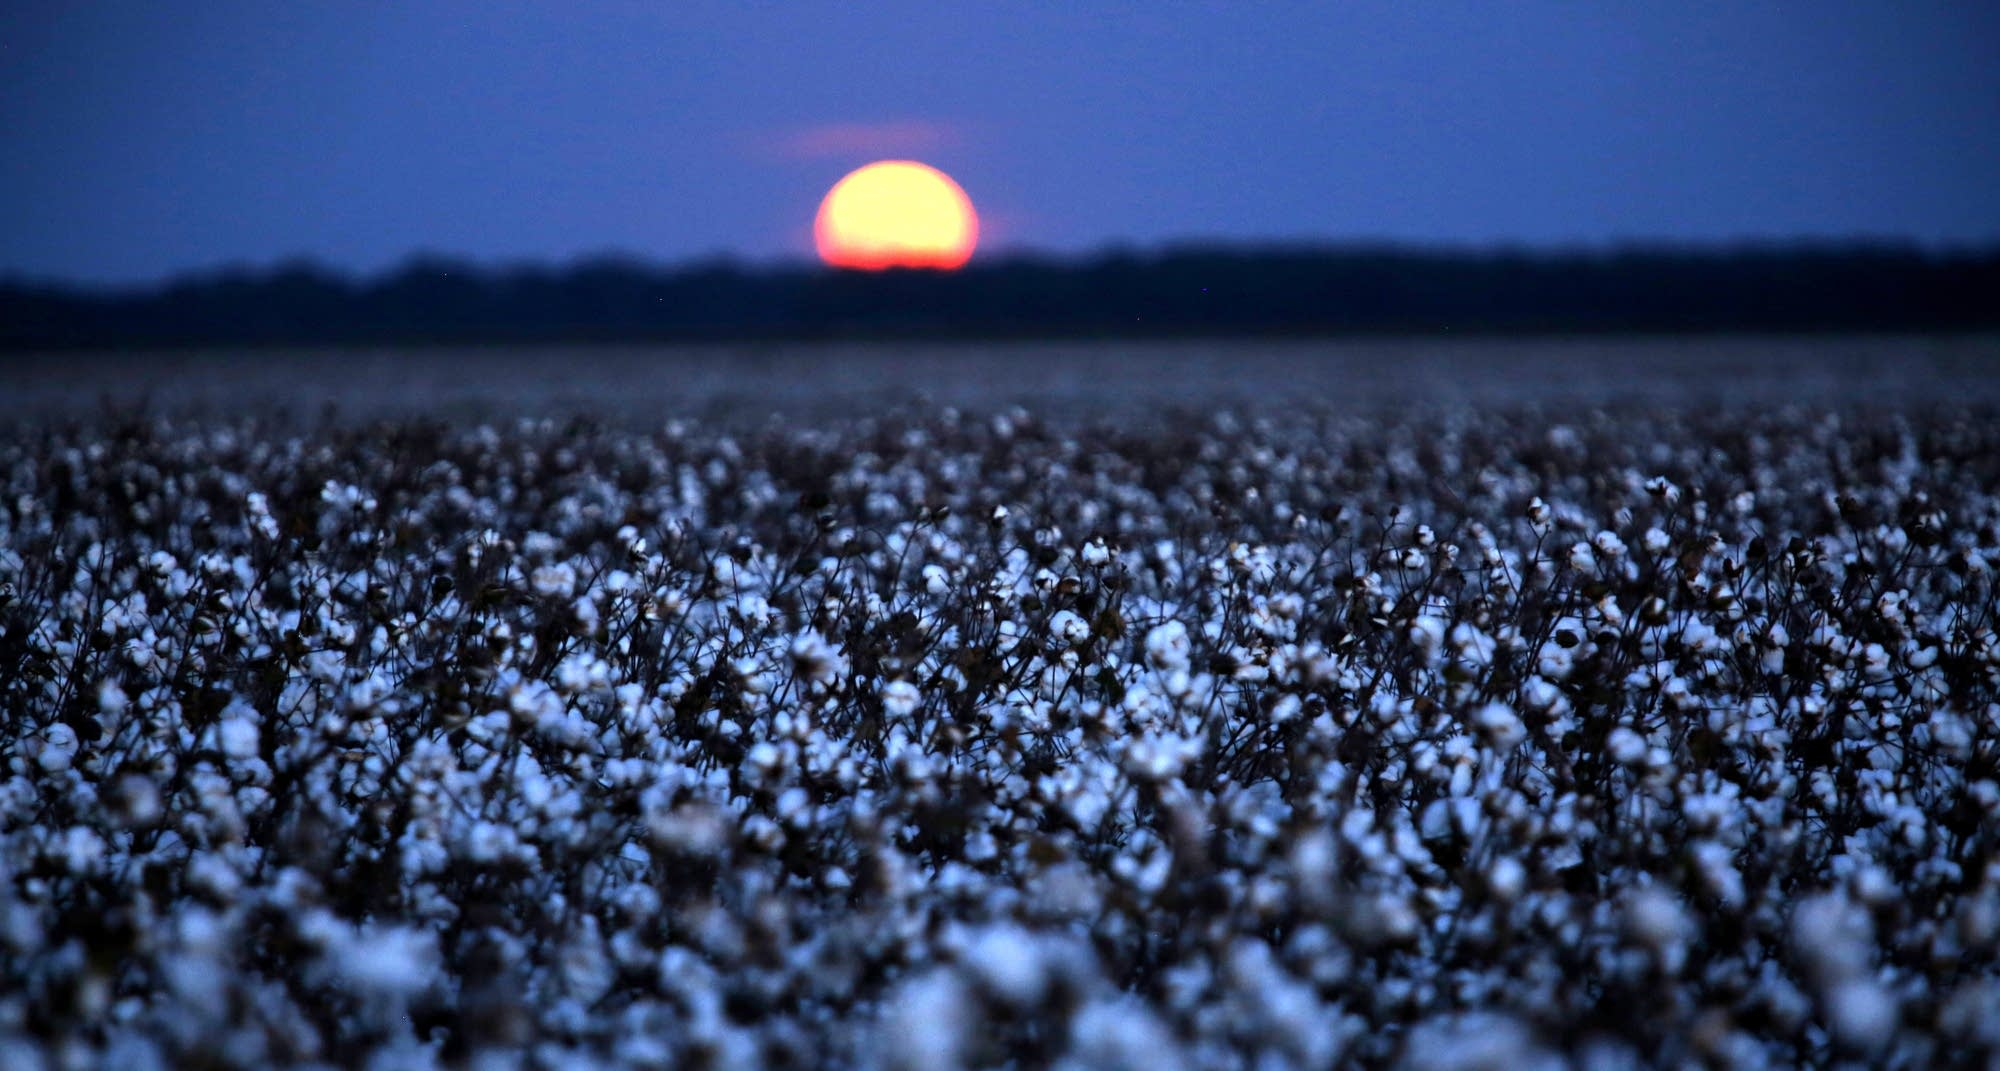 Moon over cotton field, Parchman, Mississippi